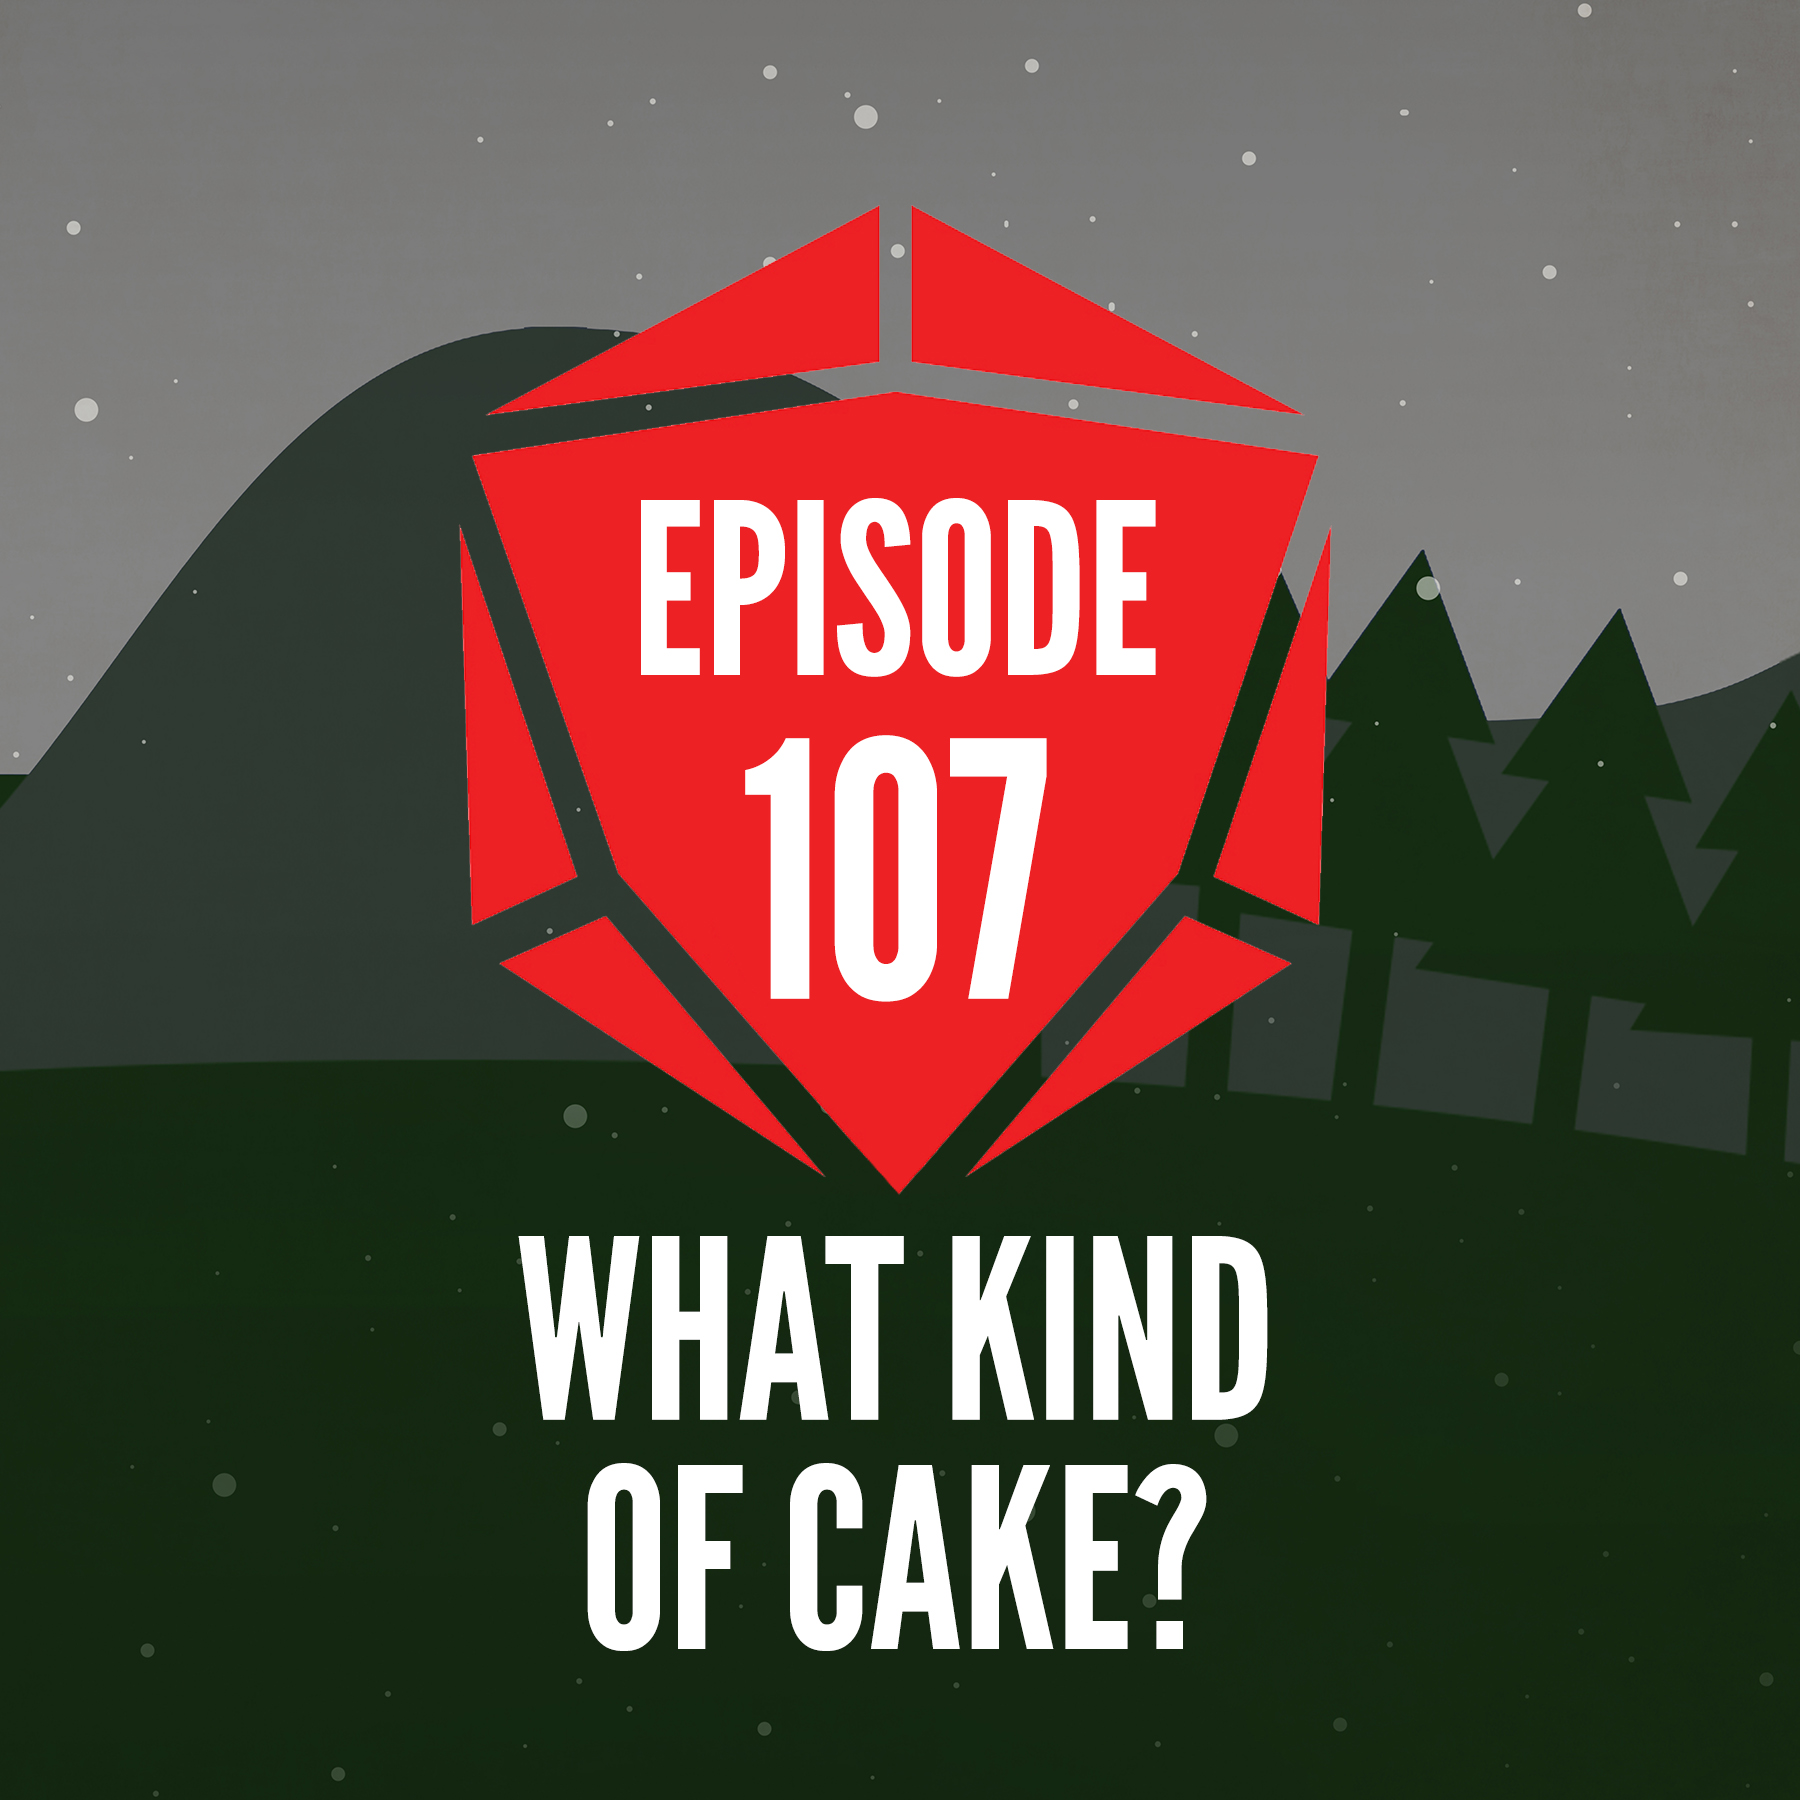 Episode 107: What Kind of Cake?